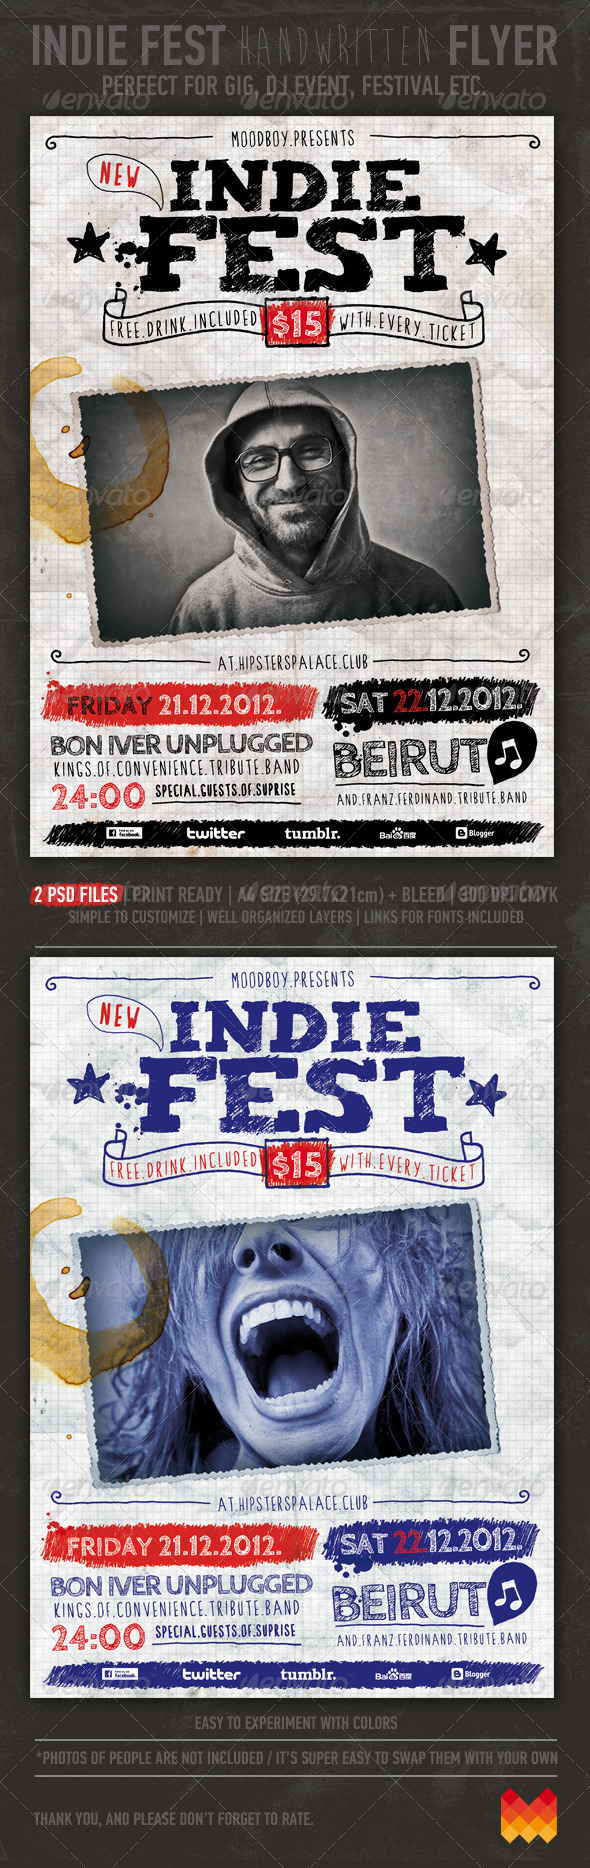 GraphicRiver Indie Fest Handwritten Flyer Poster 3330555